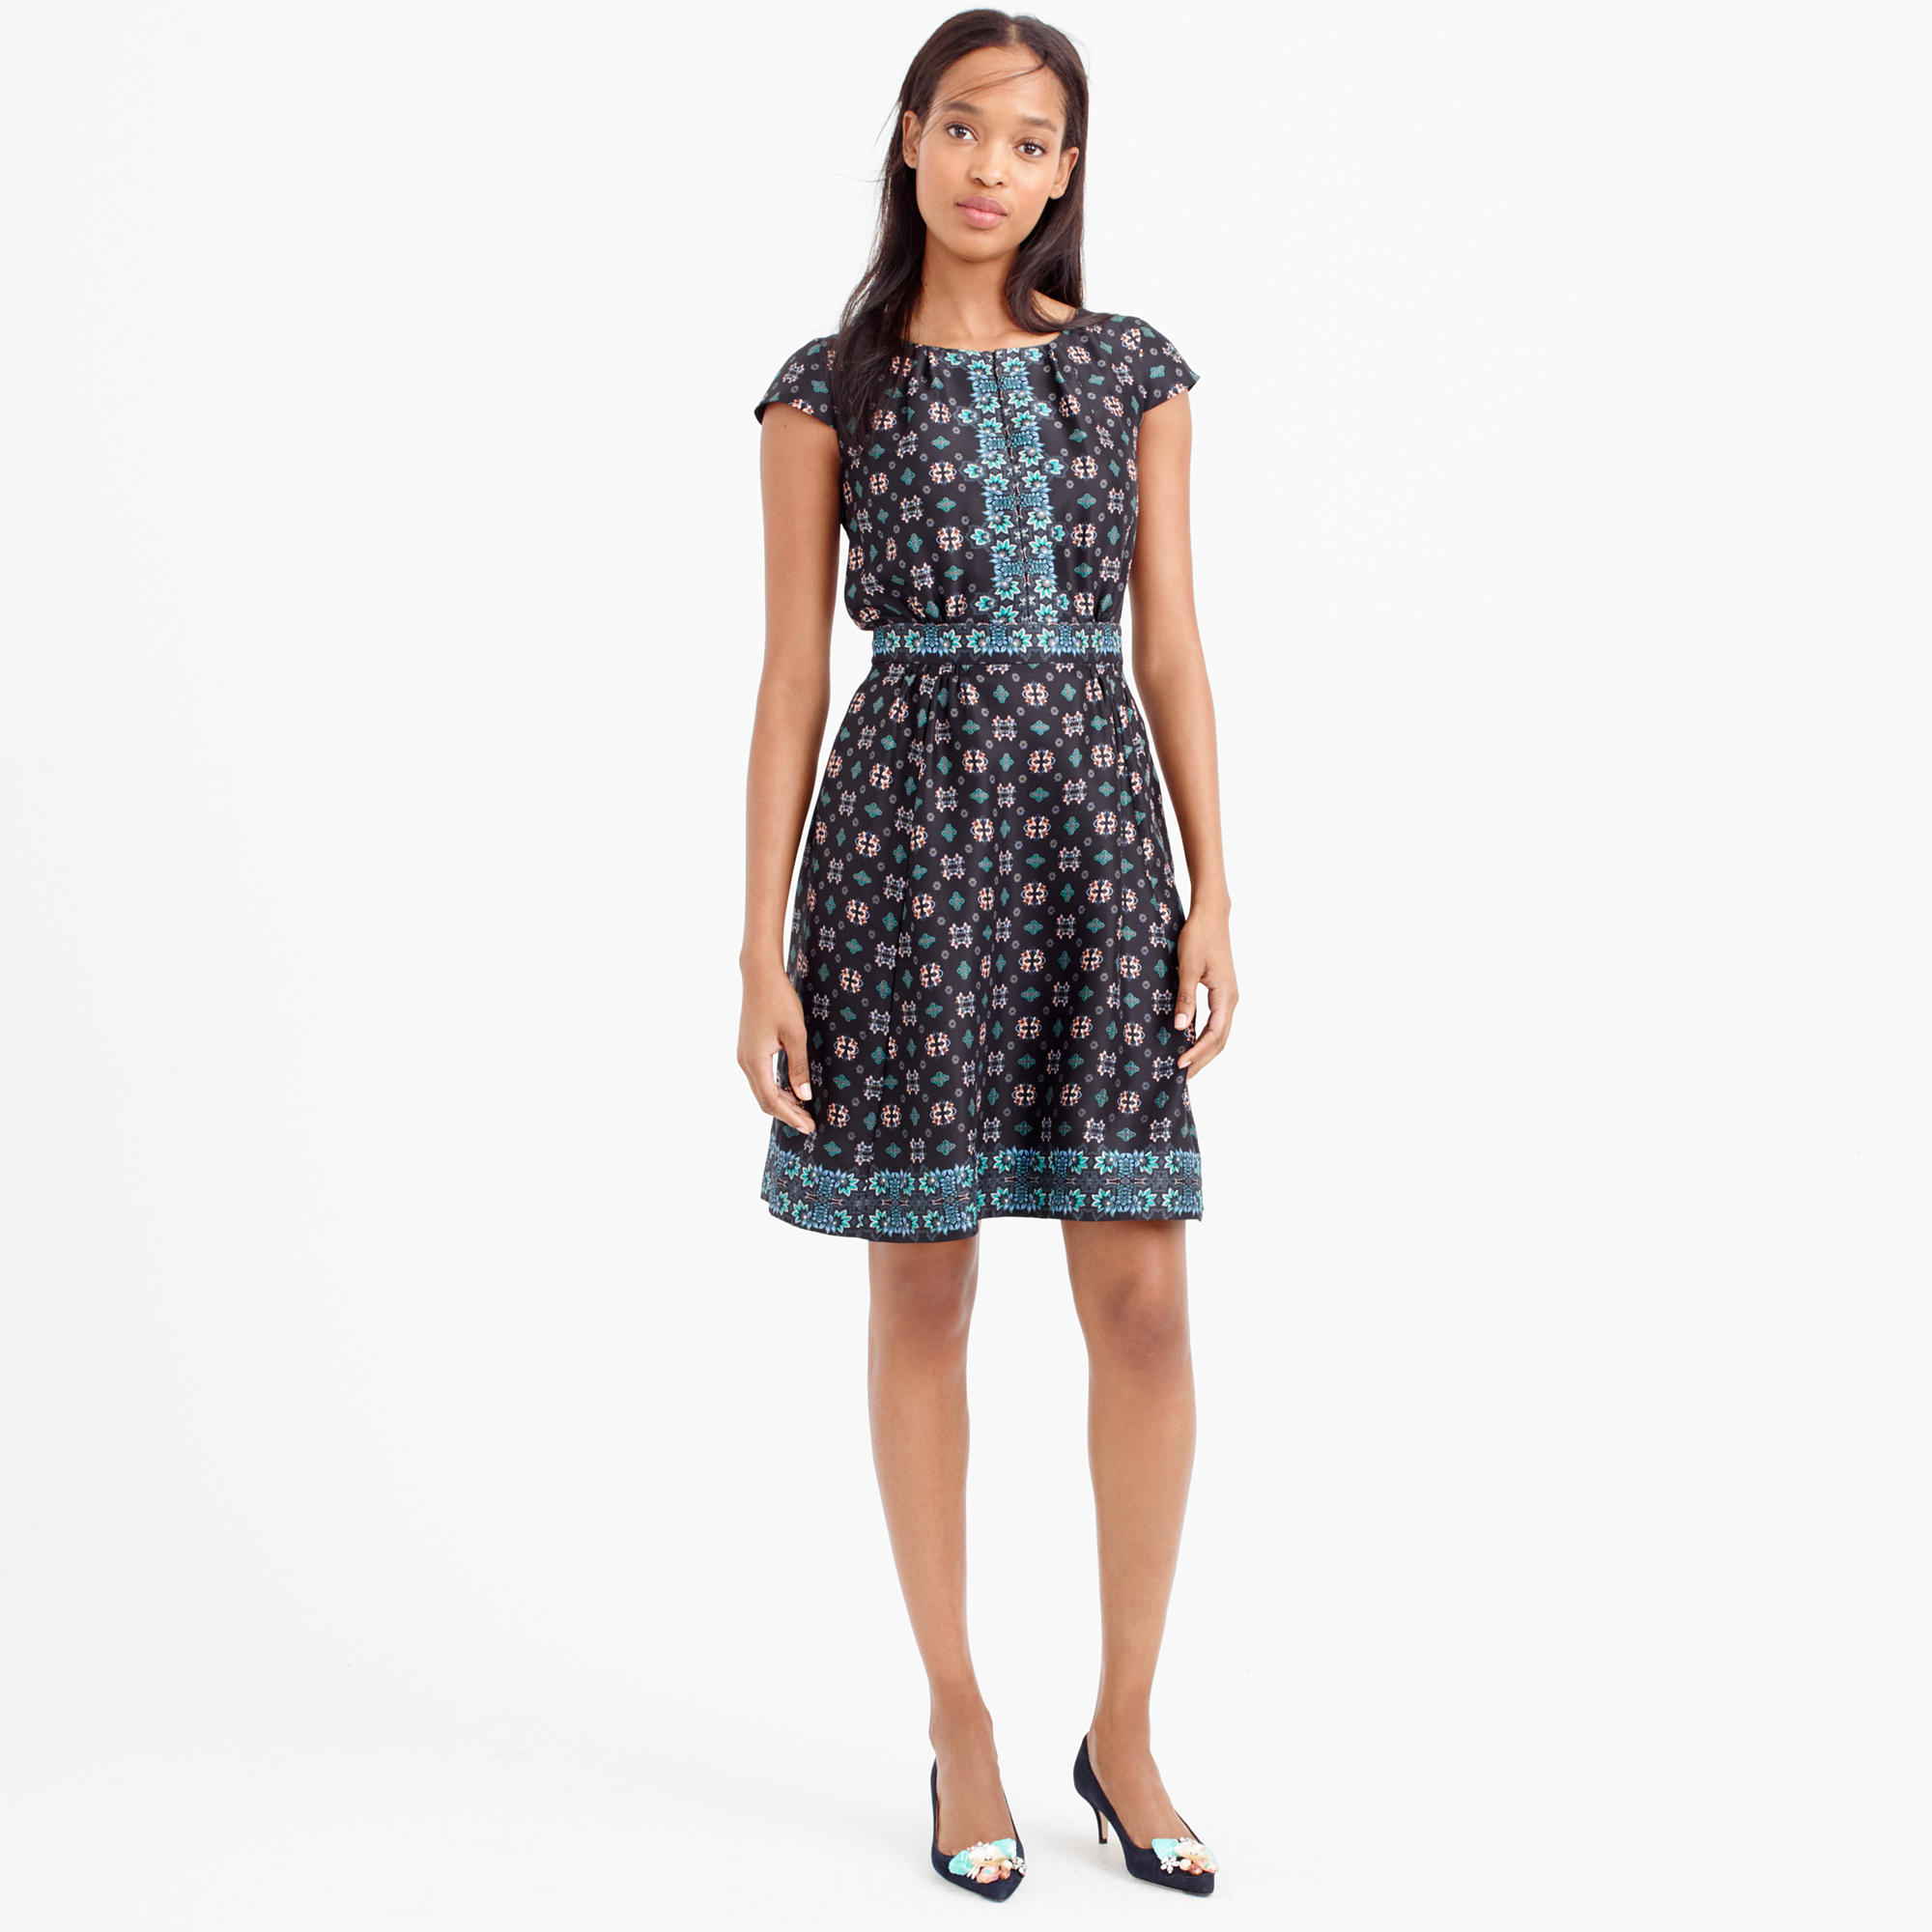 J Crew Silk Cap Sleeve Dress In Mirrored Floral In Black